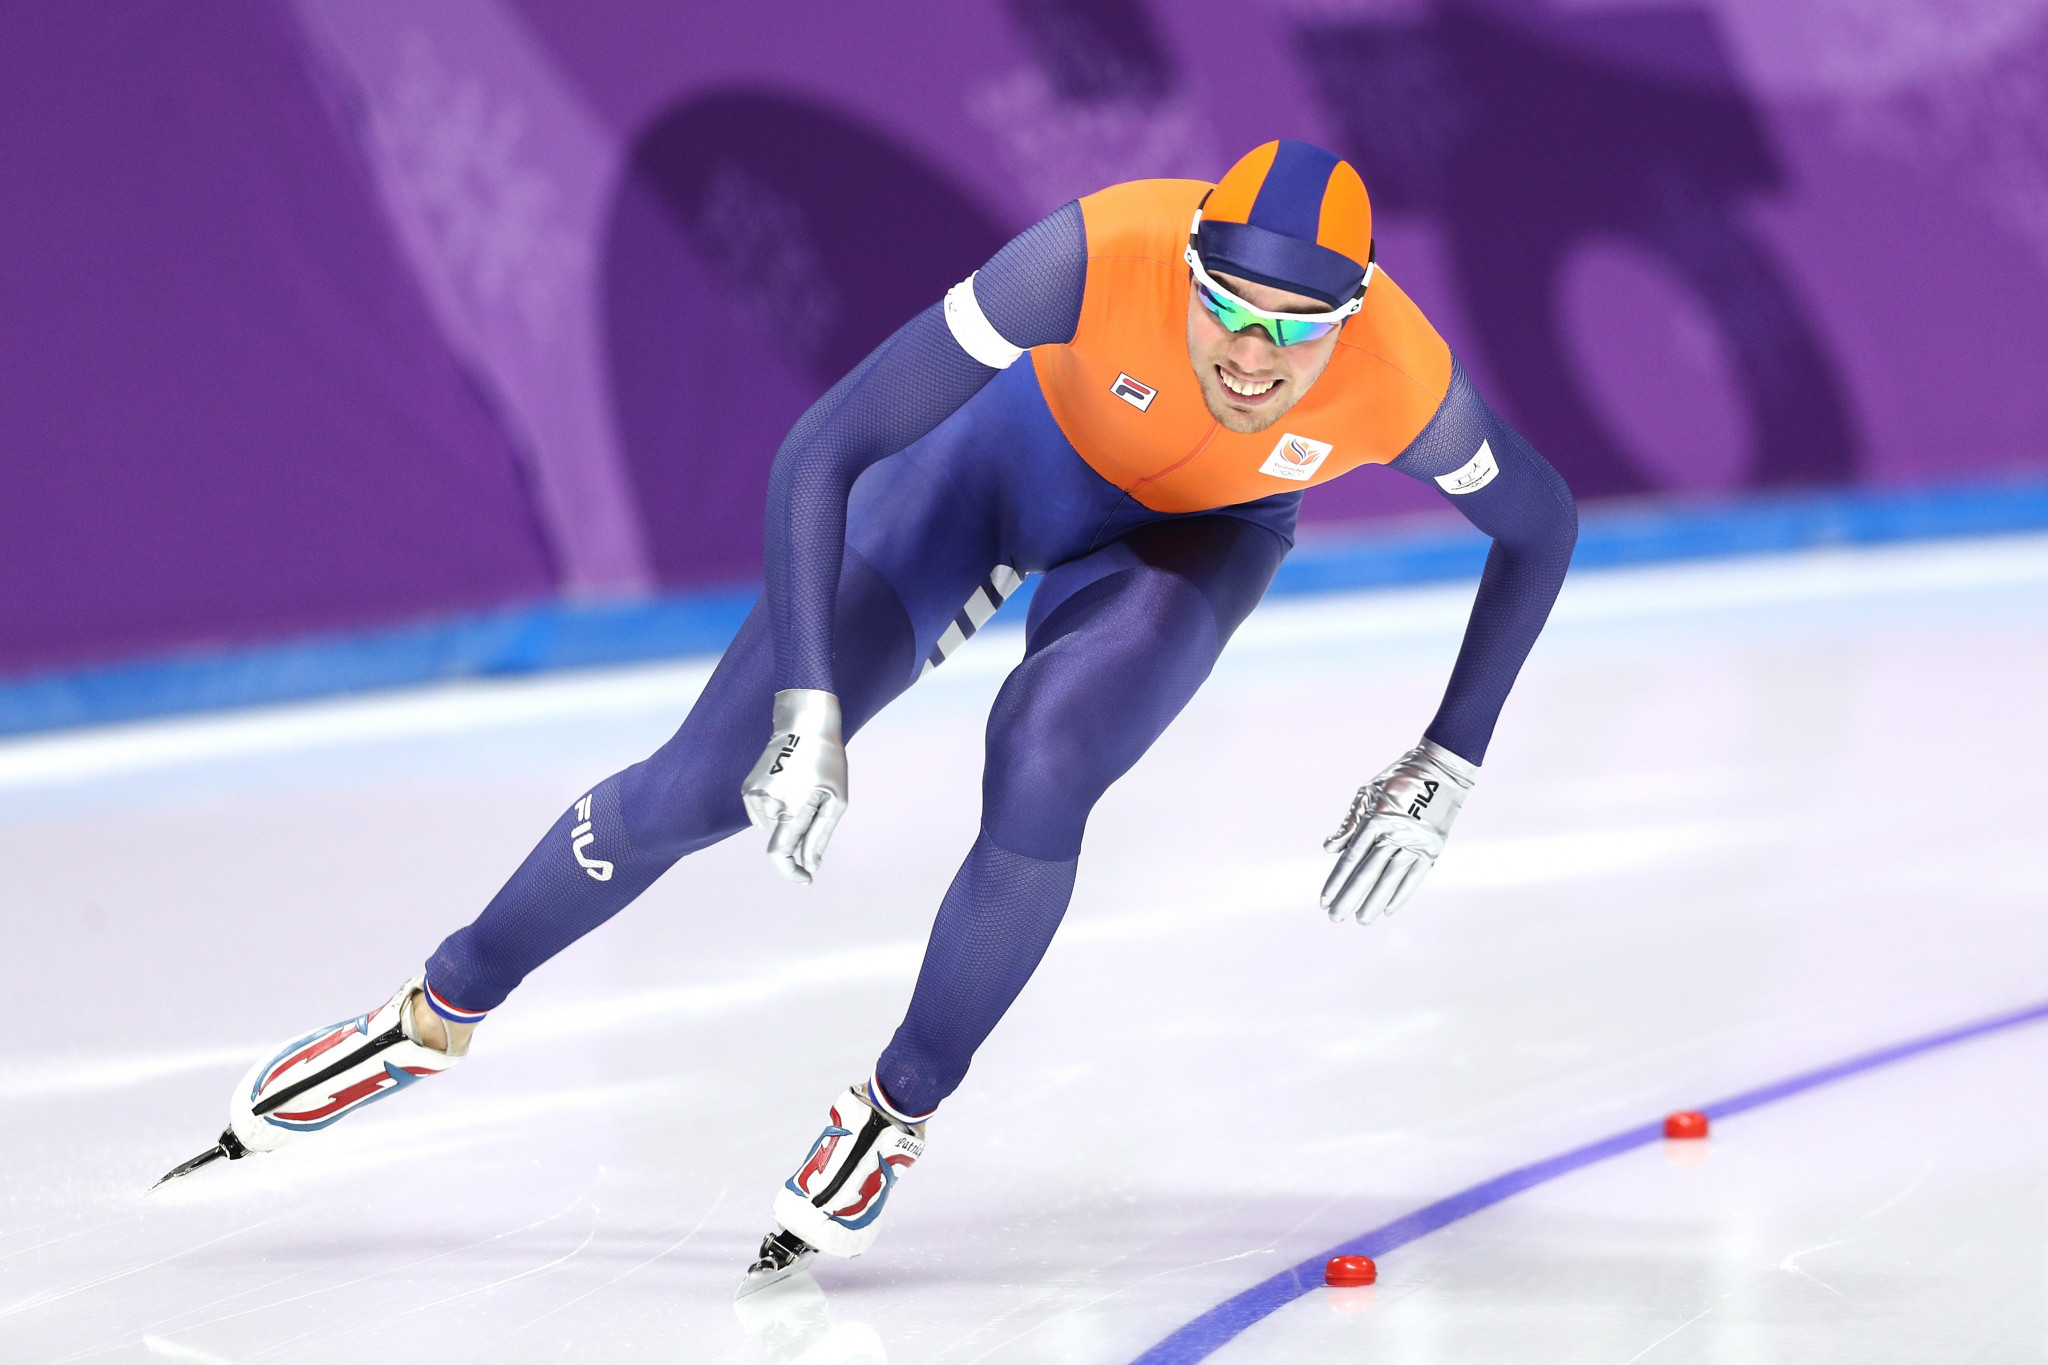 Patrick Roest of The Netherlands was a dominant winner in the men's 1000m discipline at the ISU Speed Skating World Cup finals ©Getty Images